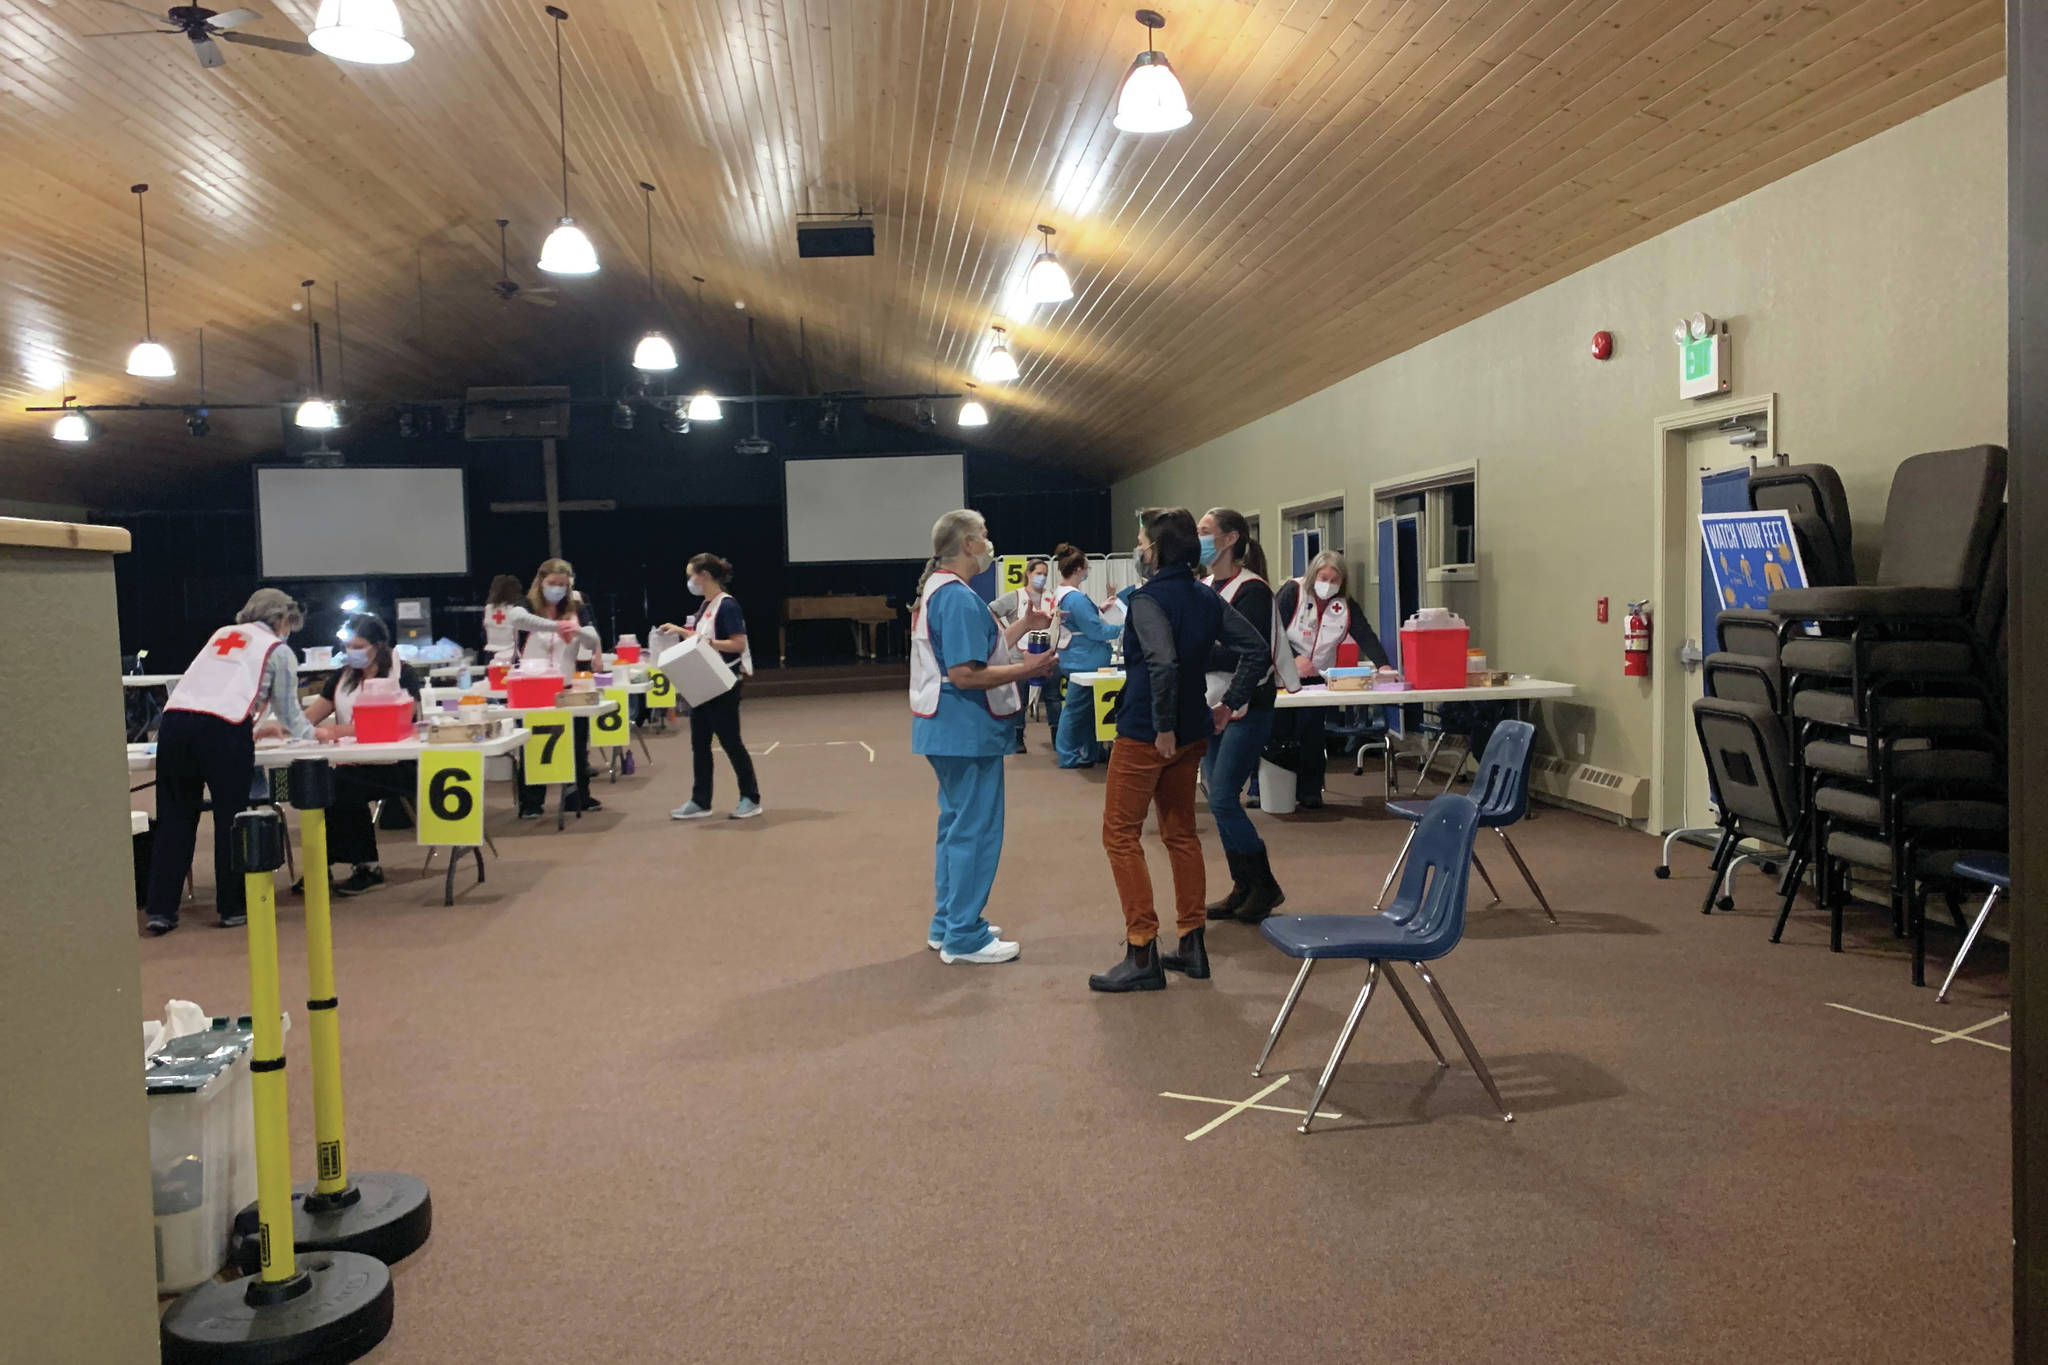 Hospital staff and volunteers prepare for a vaccination clinic Friday, Jan. 15, 2021 at Christian Community Church in Homer, Alaska. It was the first major vaccine clinic for seniors on the Kenai Peninsula. (Photo courtesy Derotha Ferraro/South Peninsula Hospital)